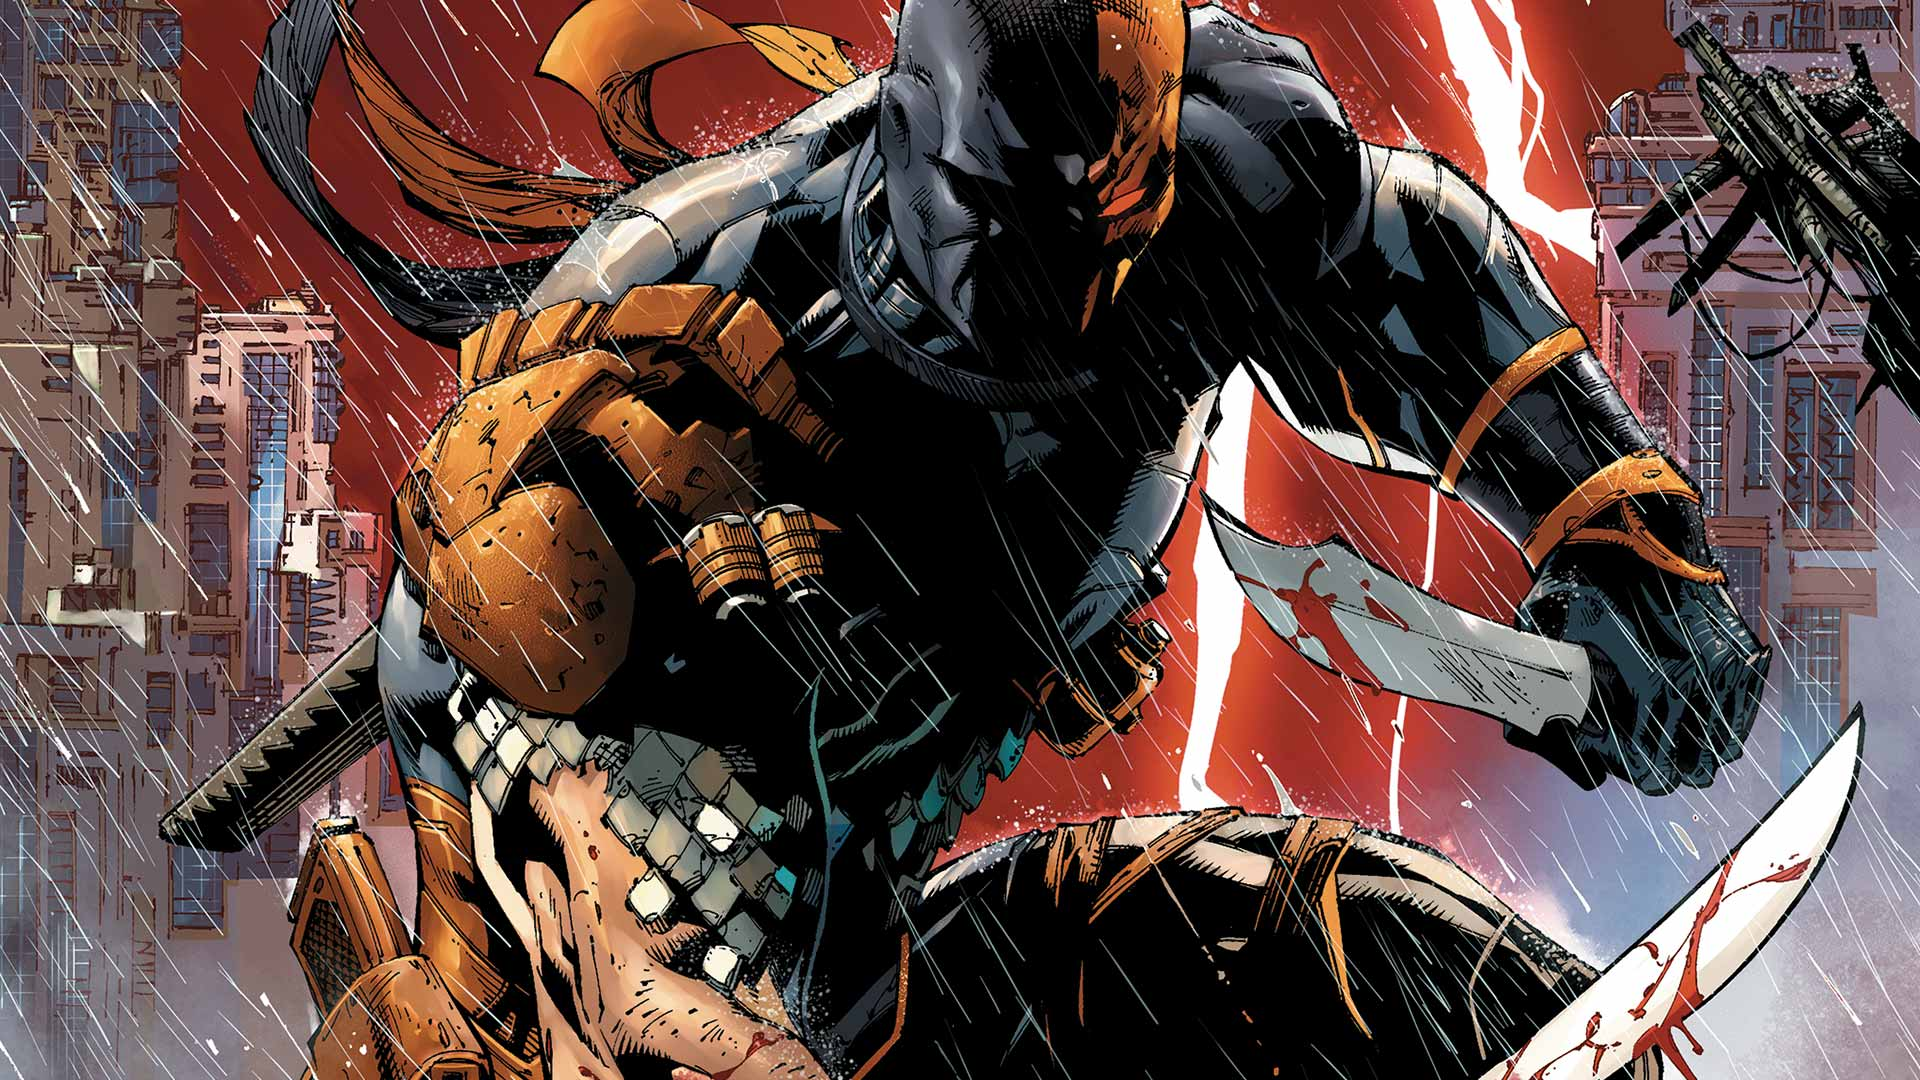 Who Is Deathstroke Just A Man Beat Up The Justice League By Himself